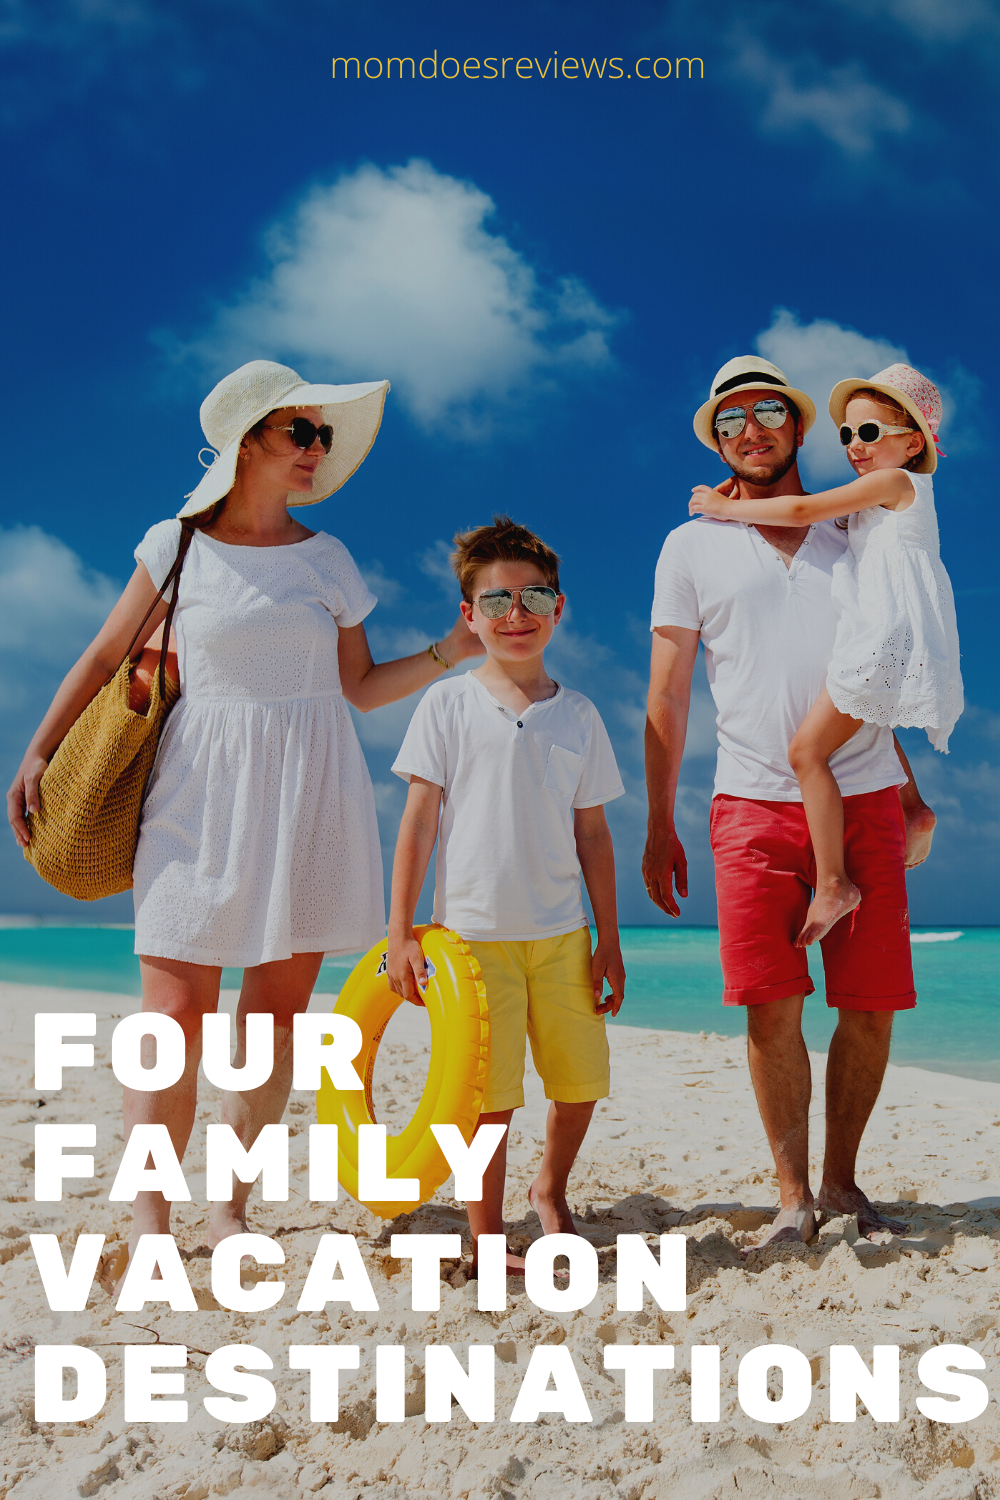 Vacation Time for the Family: 4 Destinations Worth Looking Into